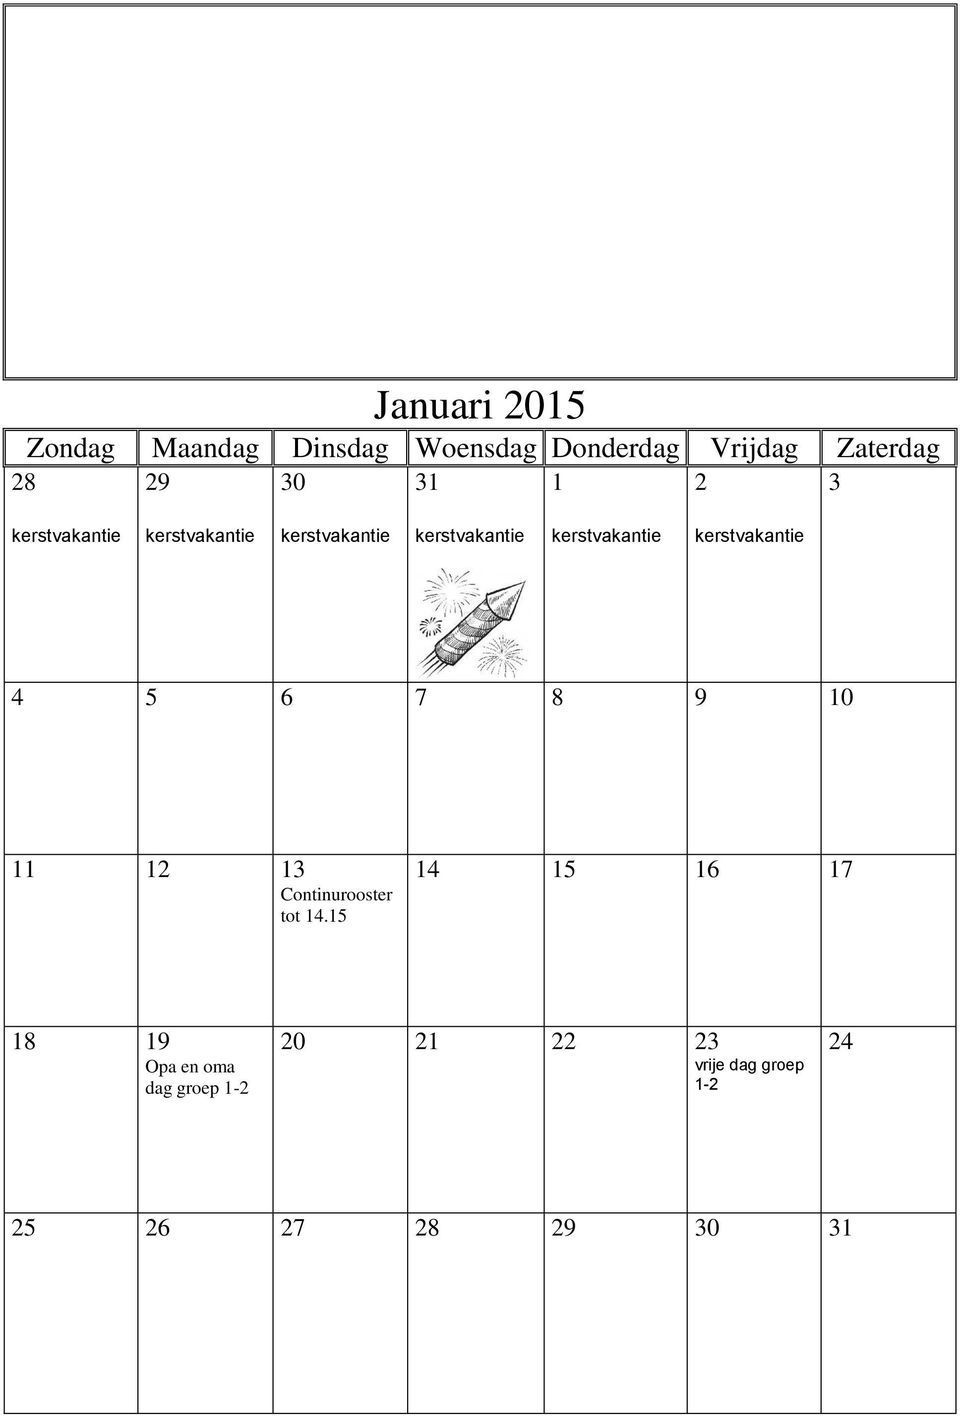 Continurooster tot 14.